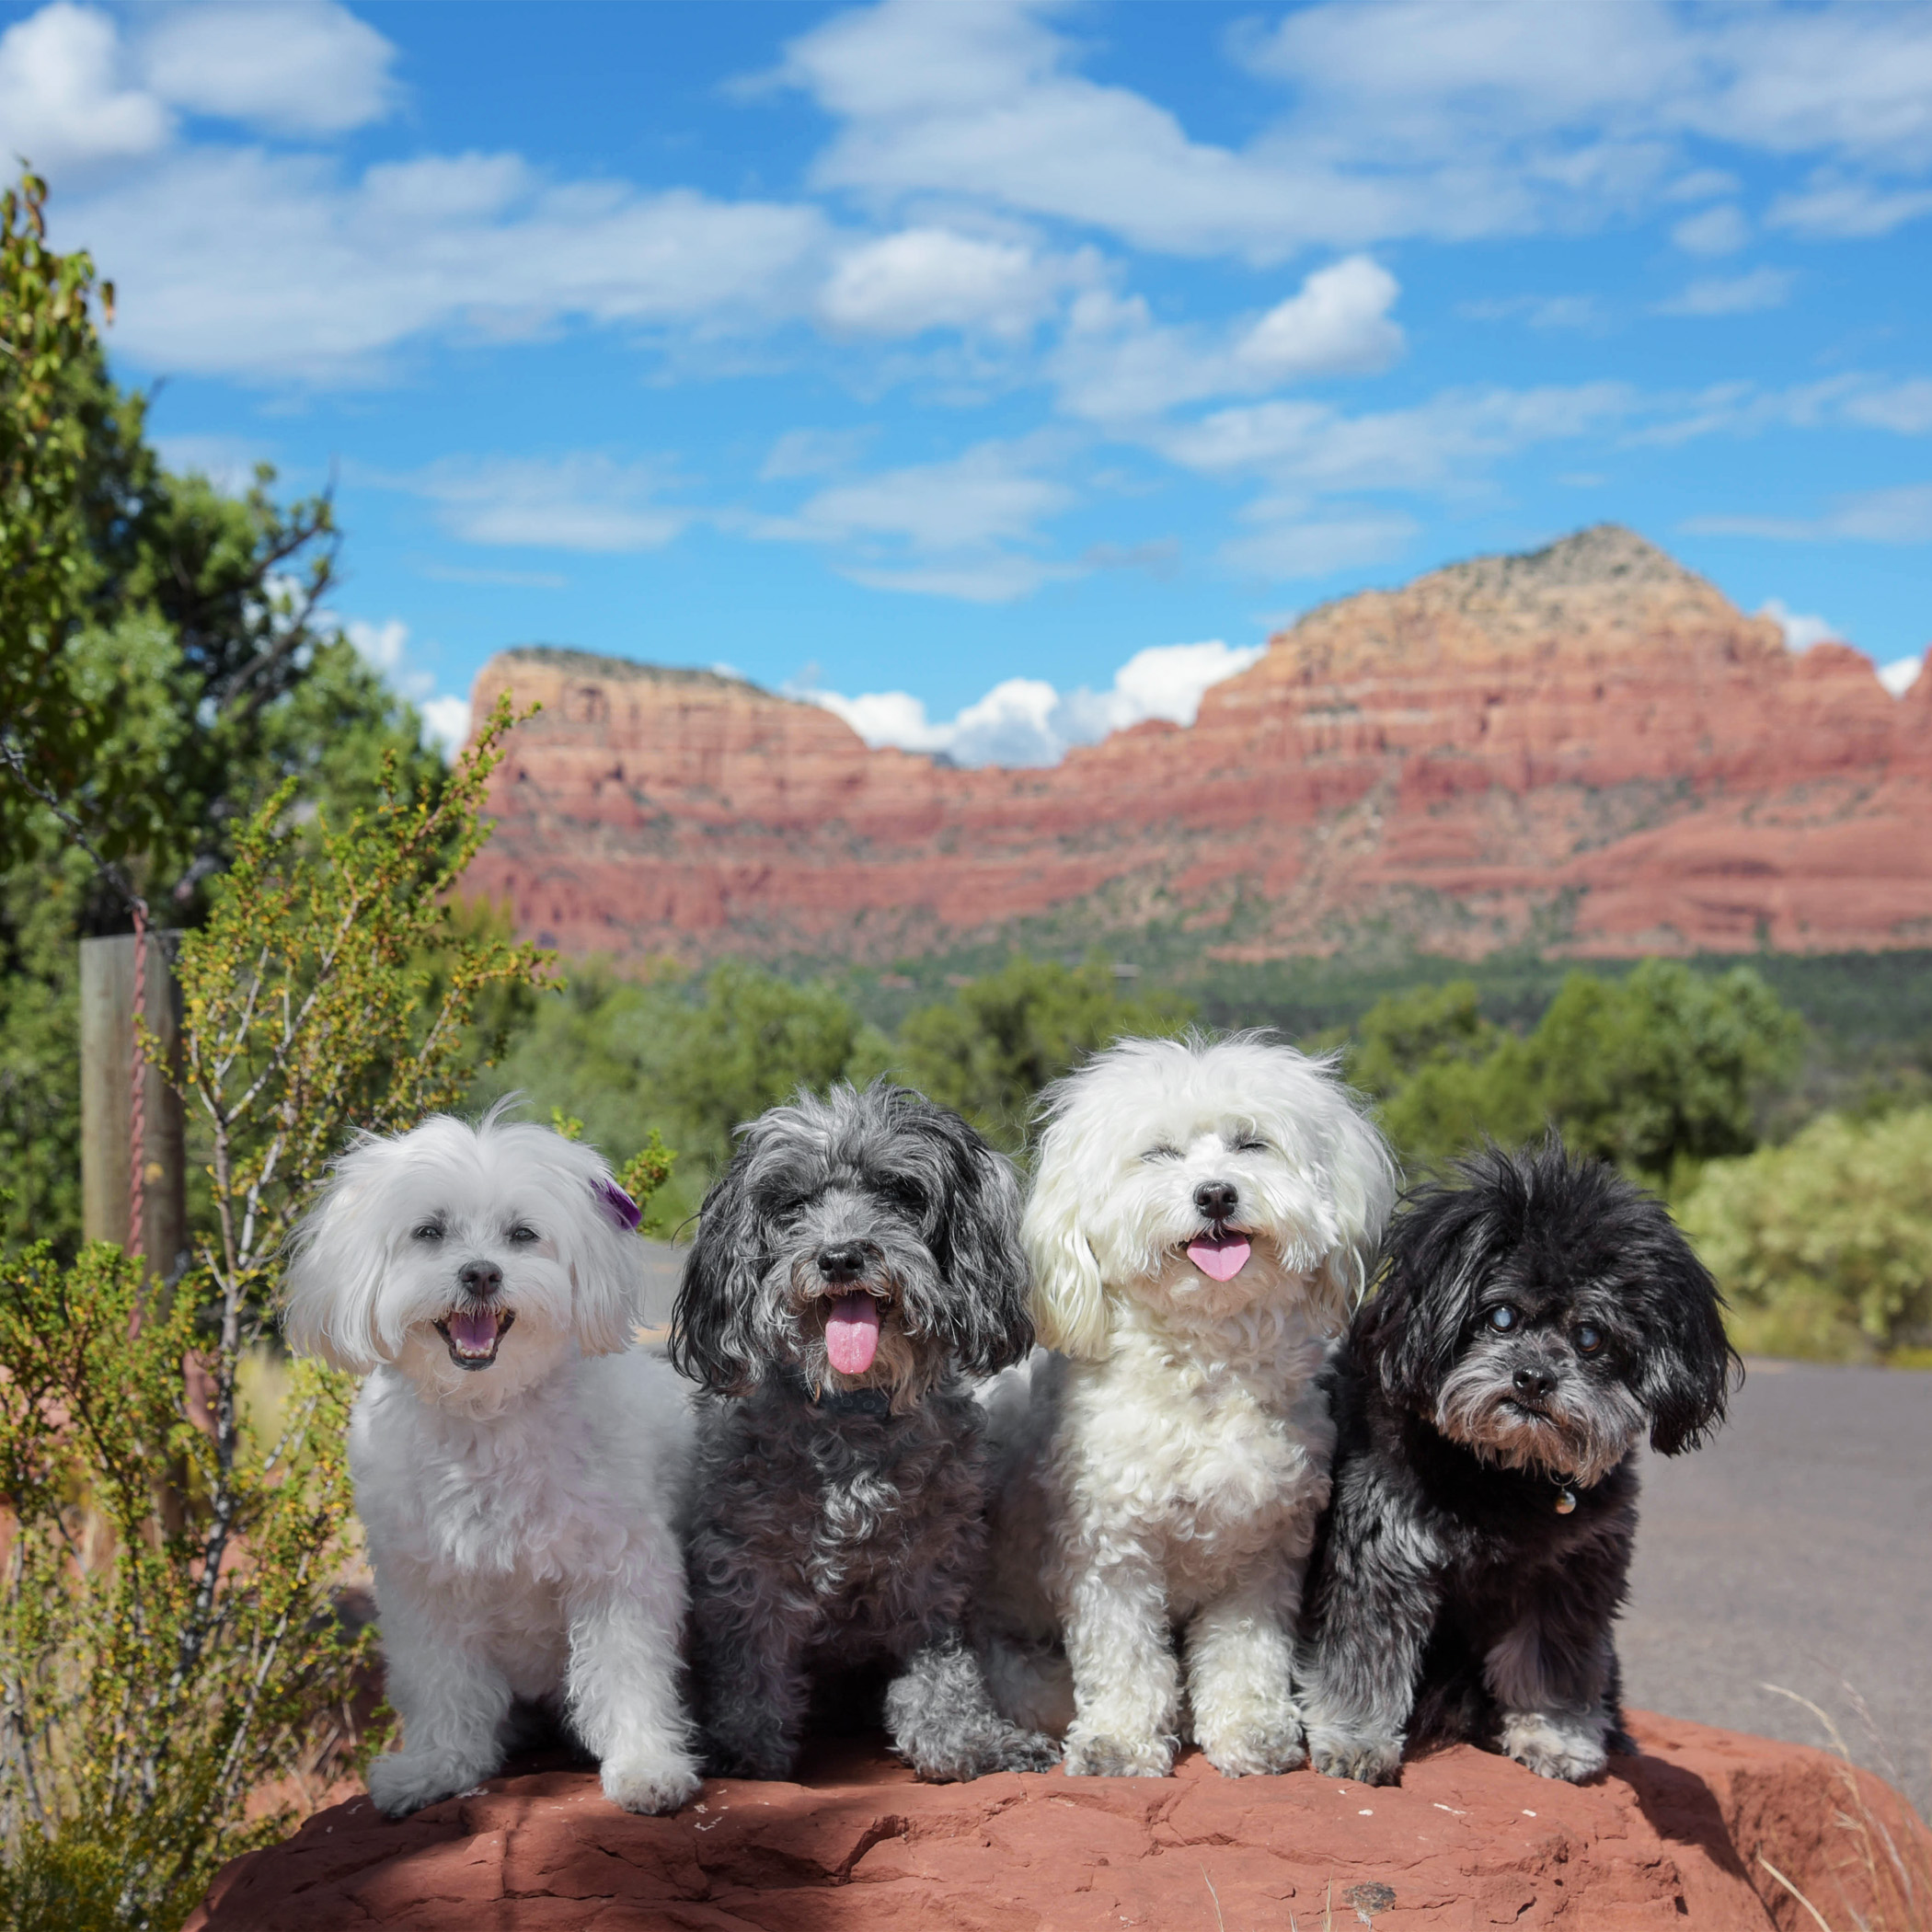 Having visitors is so fun, we get to explore places that we don't go to on a regular basis. Like Sedona, less than two hours away, but we have only been there a couple of times. Nothing like seeing the beautiful, red rocks of Sedona!